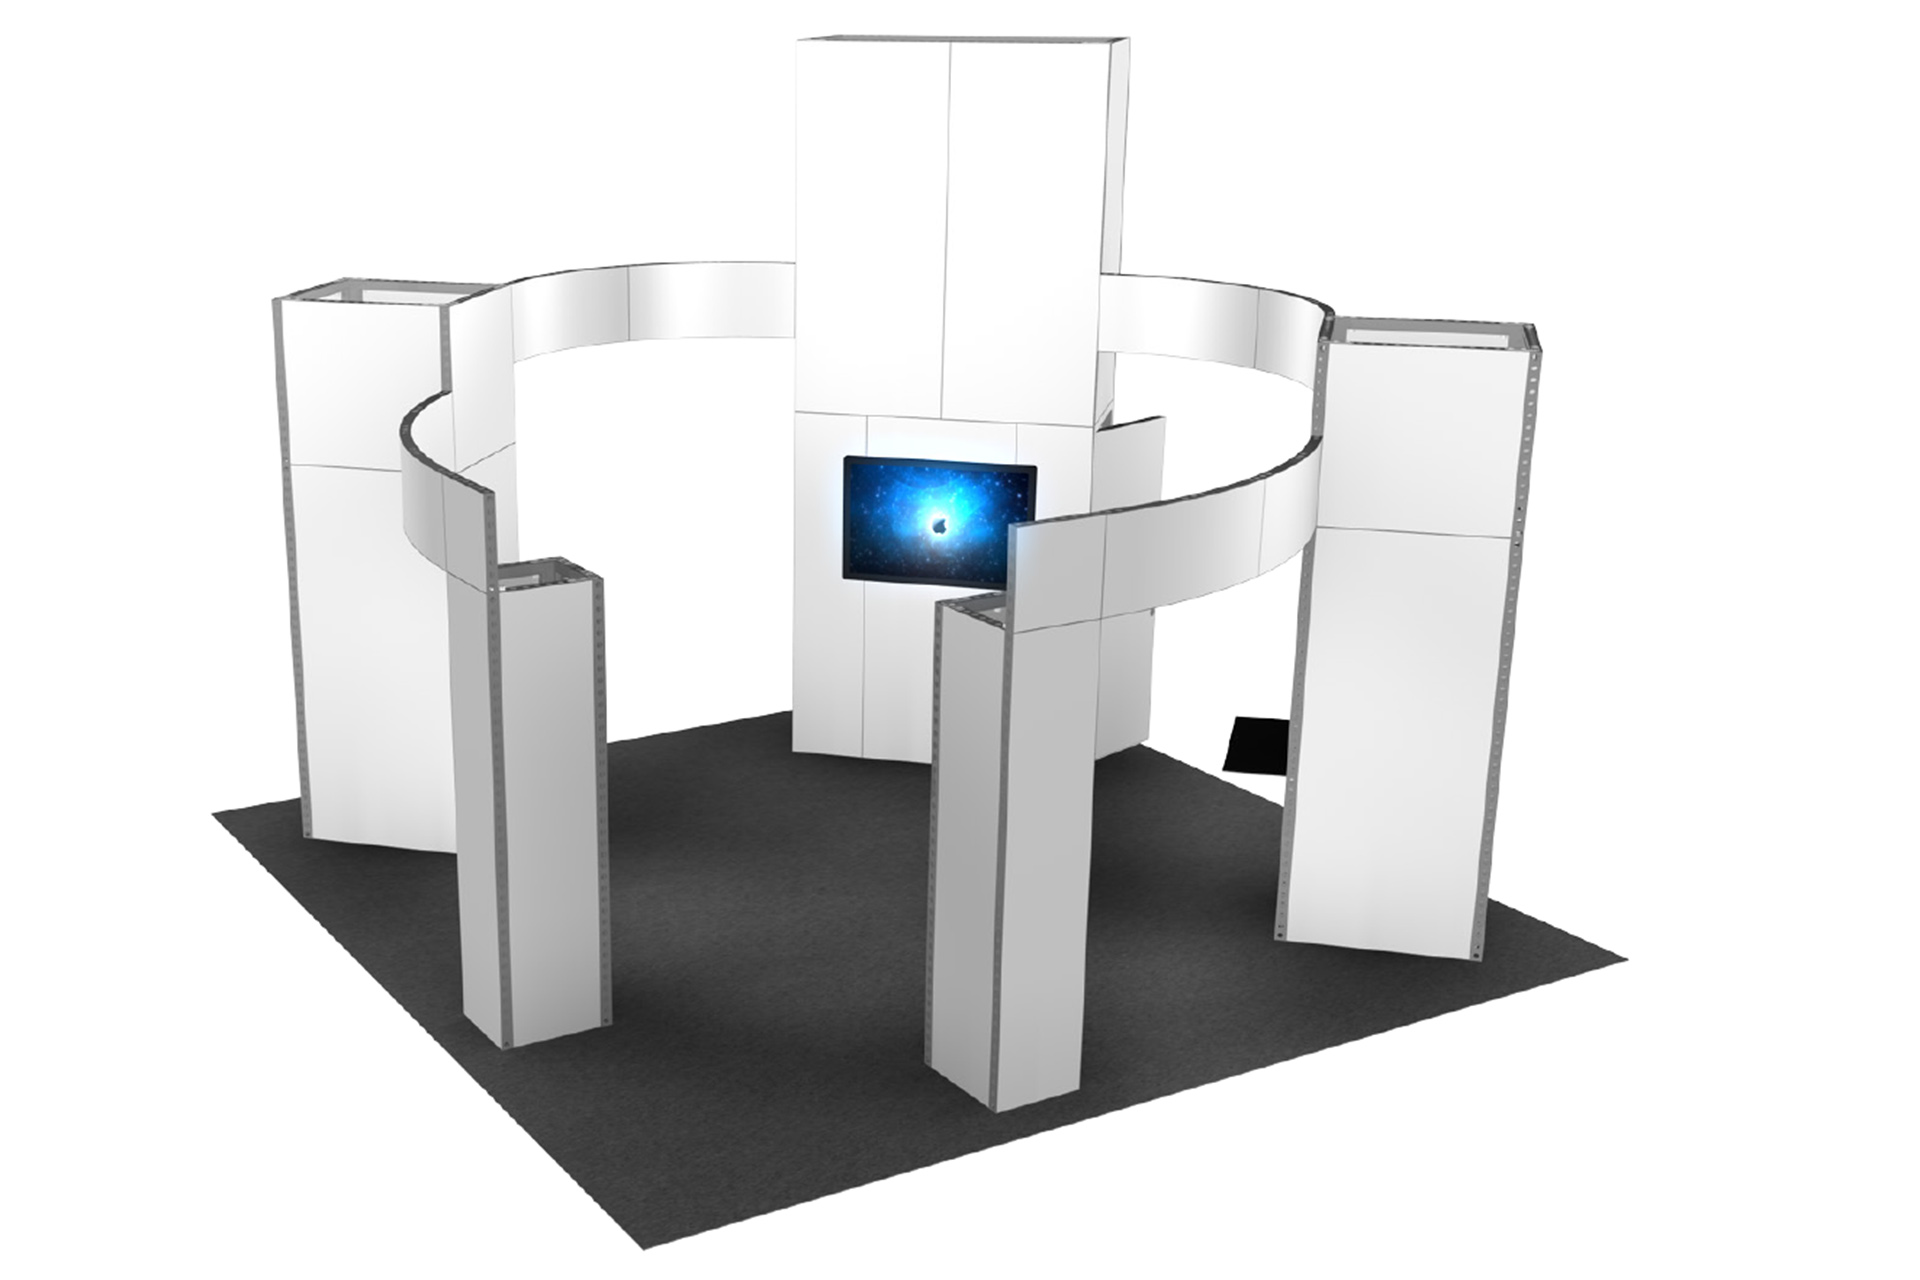 Trade Show Booth Options : Choose from our modern trade show booth options